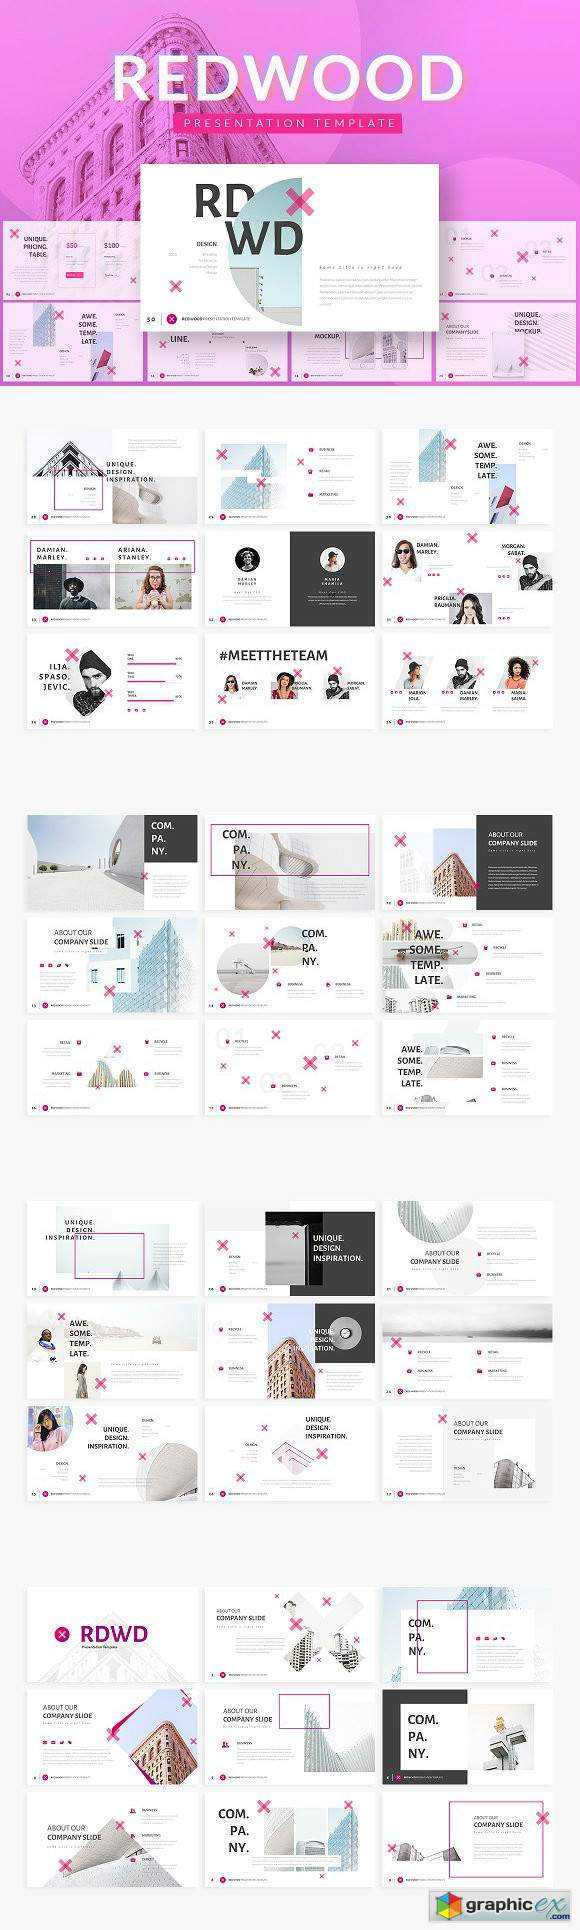 REDWOOD Powerpoint Template